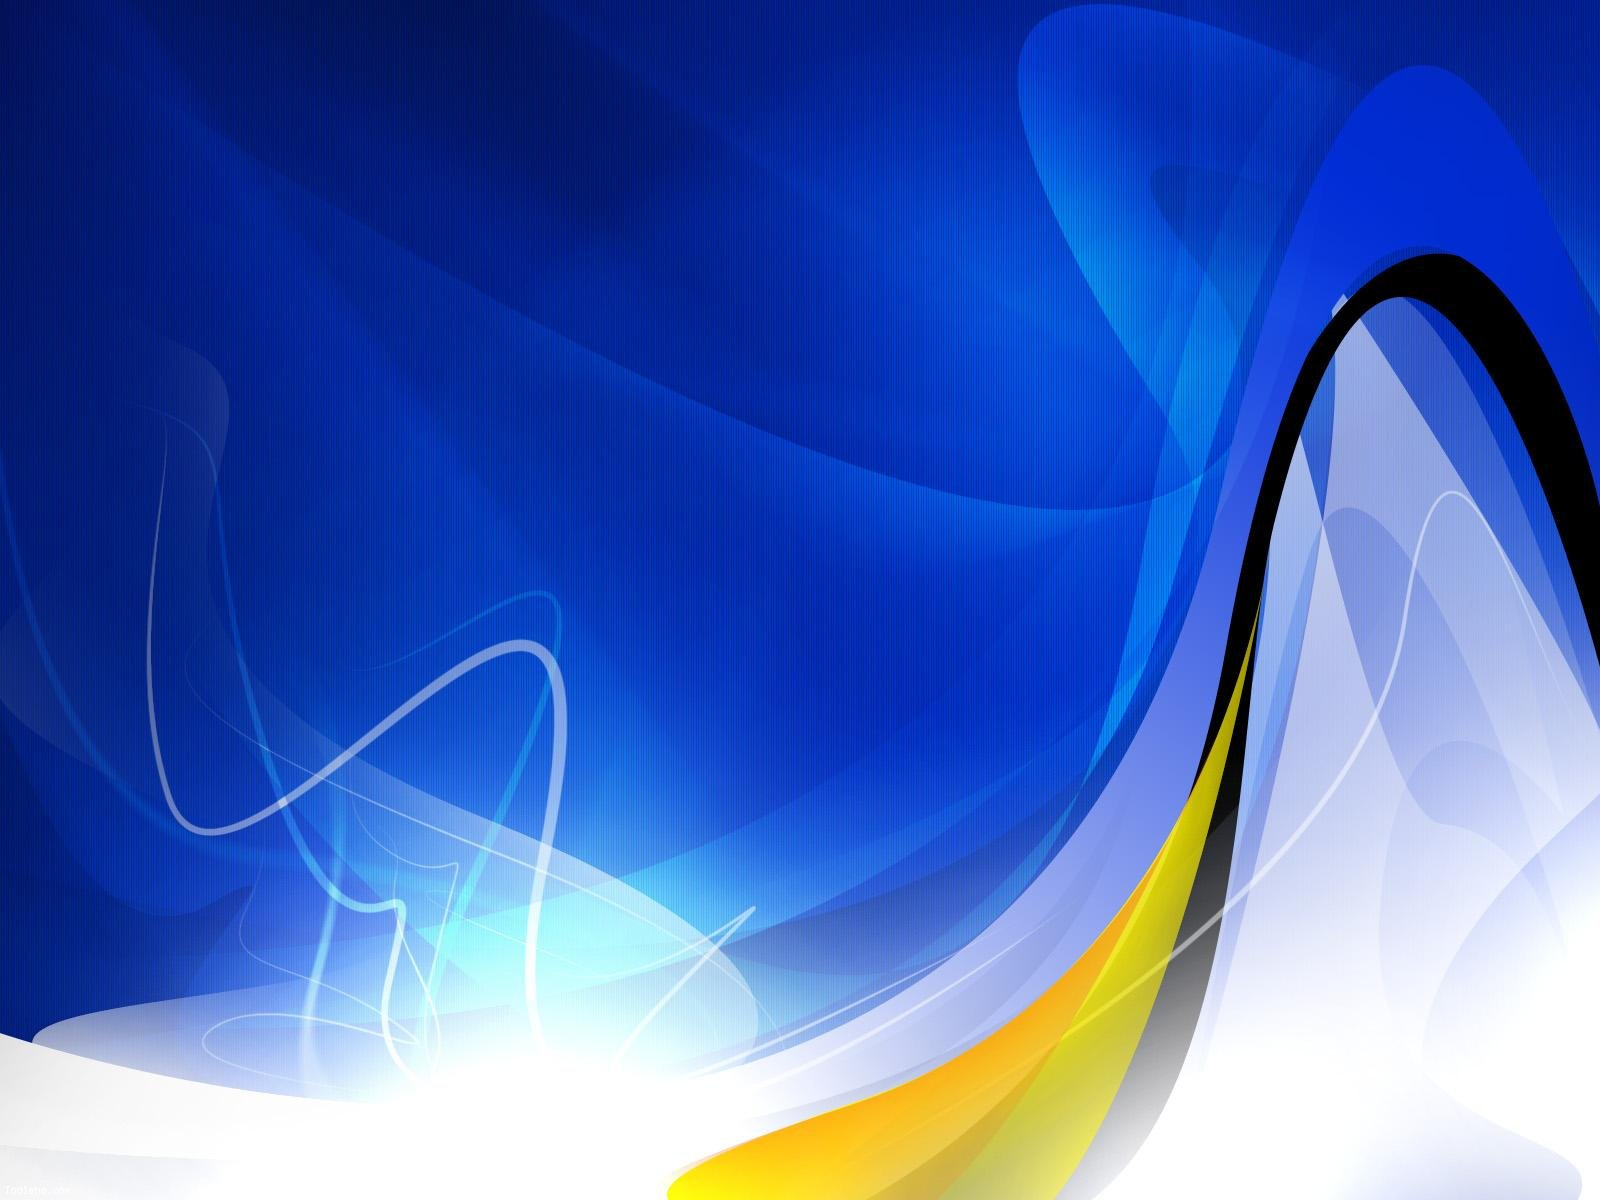 Forum Spreading Colors HD Abstract Wallpapers for widescreen 1600x1200